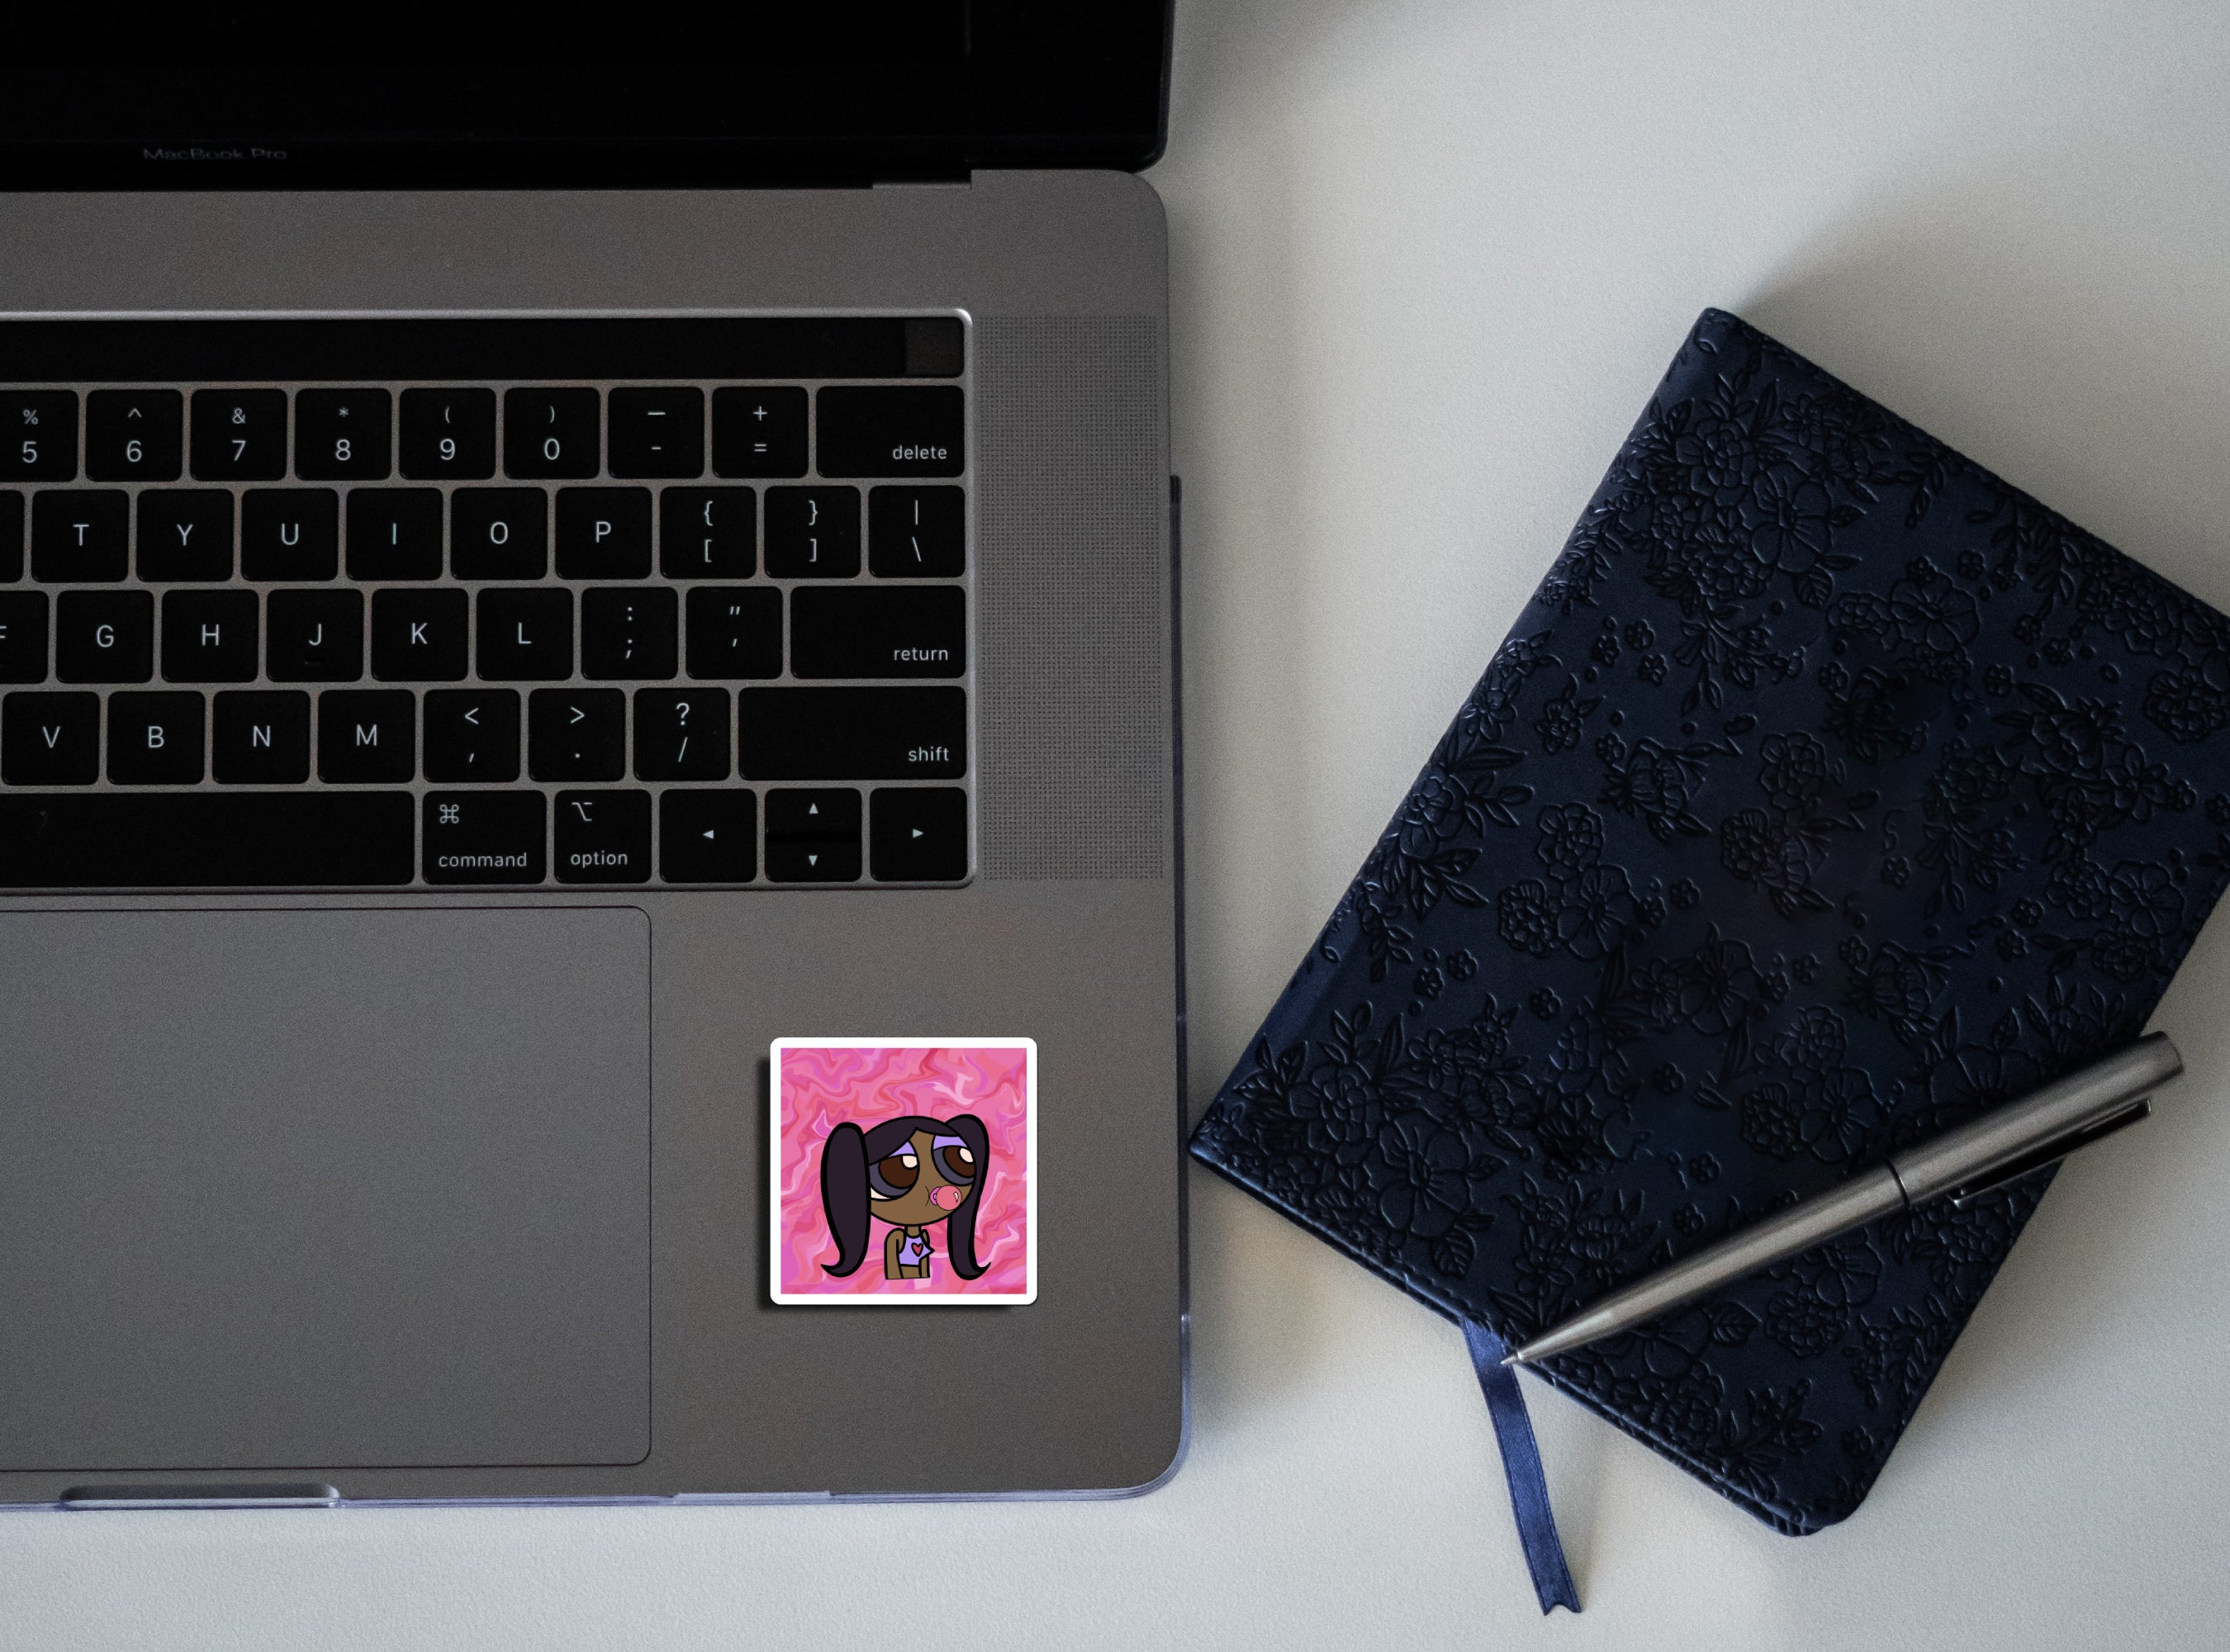 5 Reasons Why People Use Stickers on Laptops